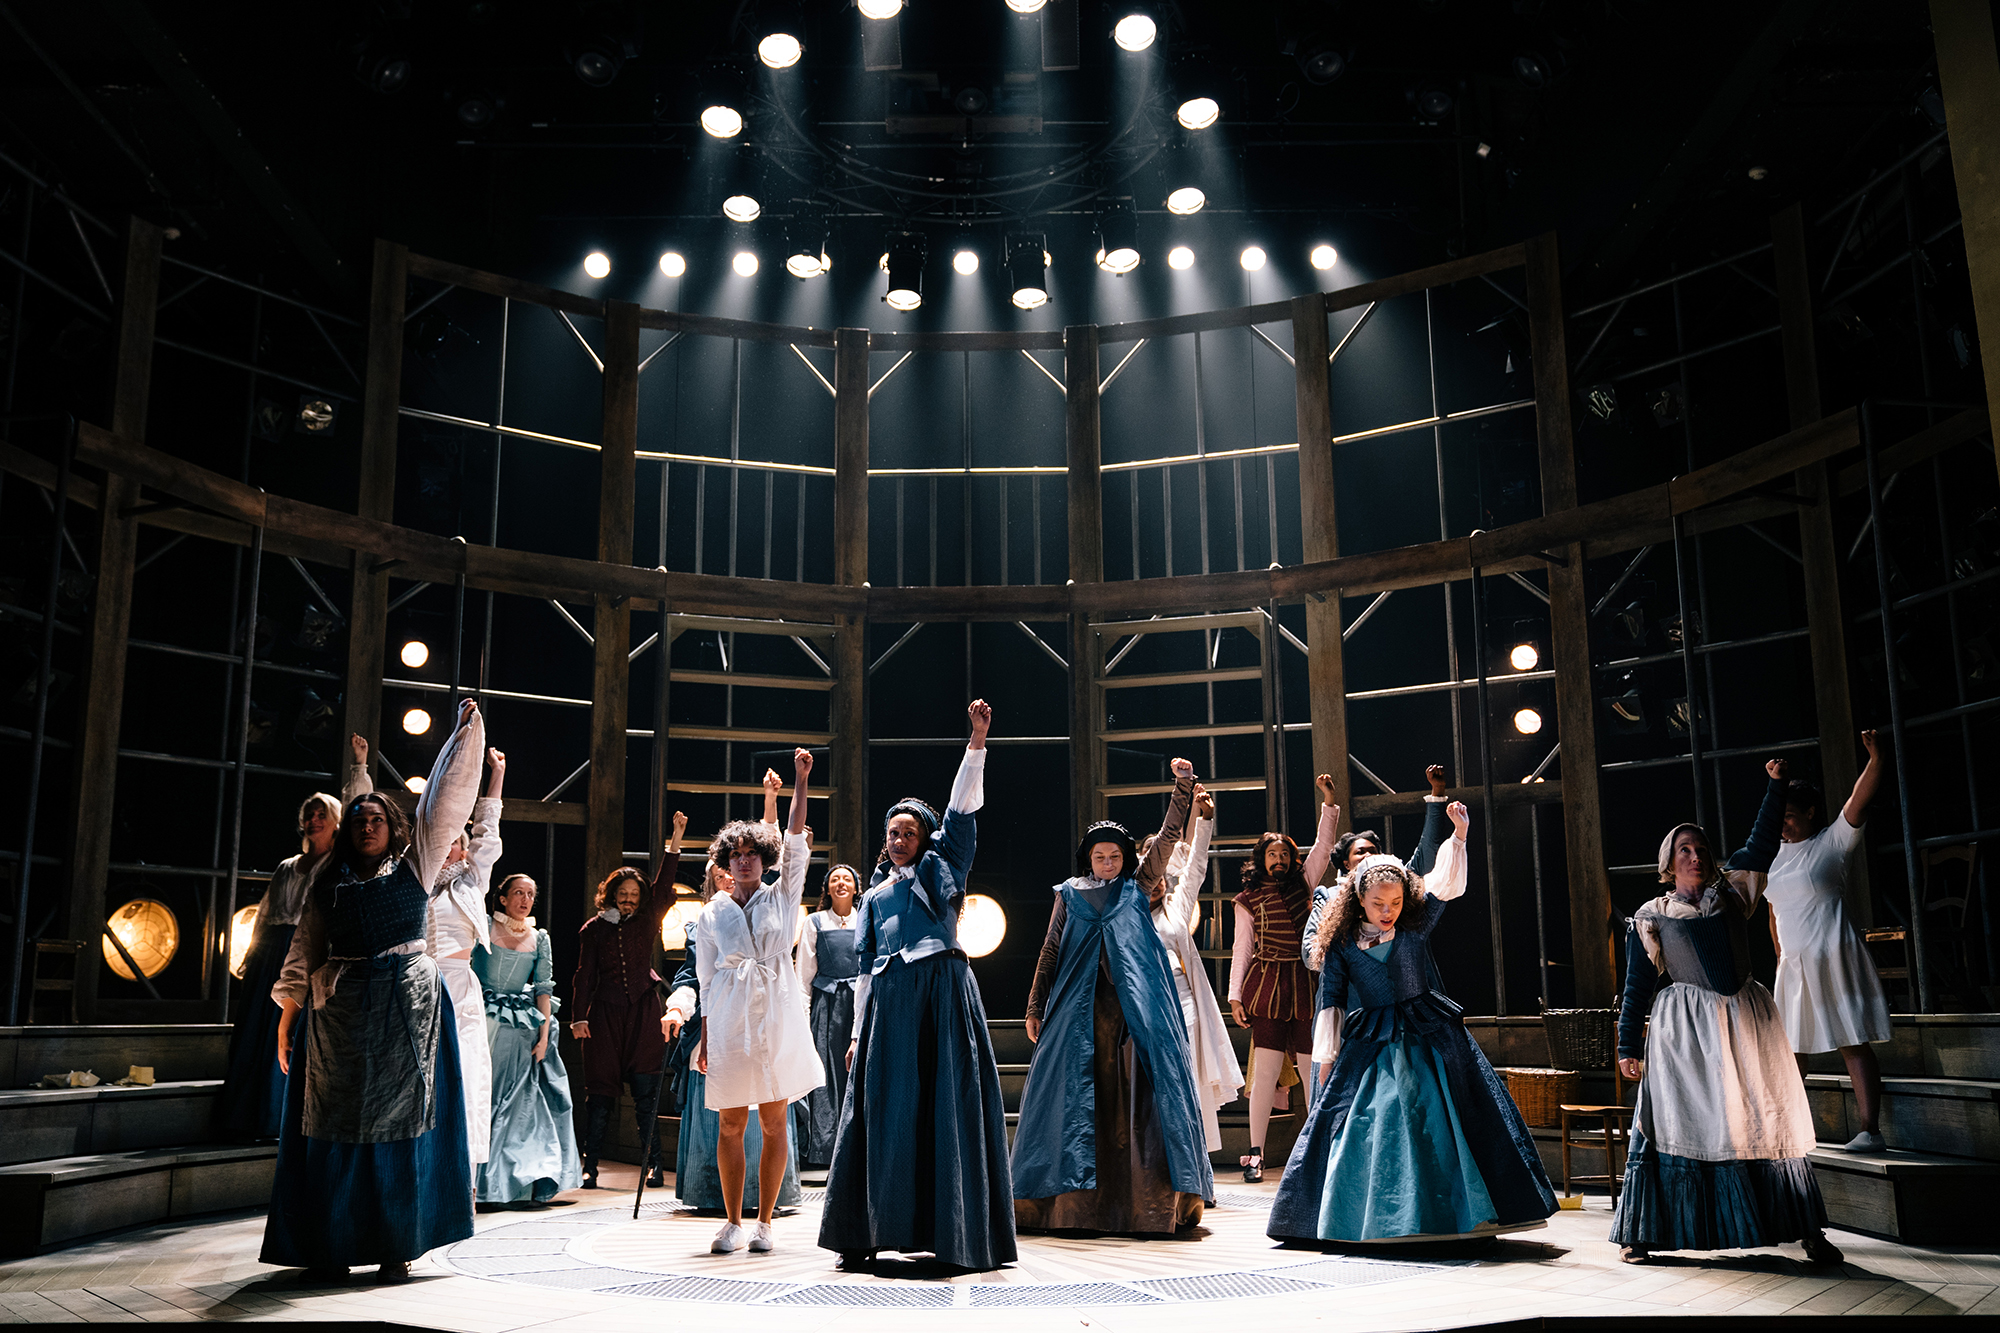 A group of actors stand on stage under spotlights, their left arms raised in the air into a fist.